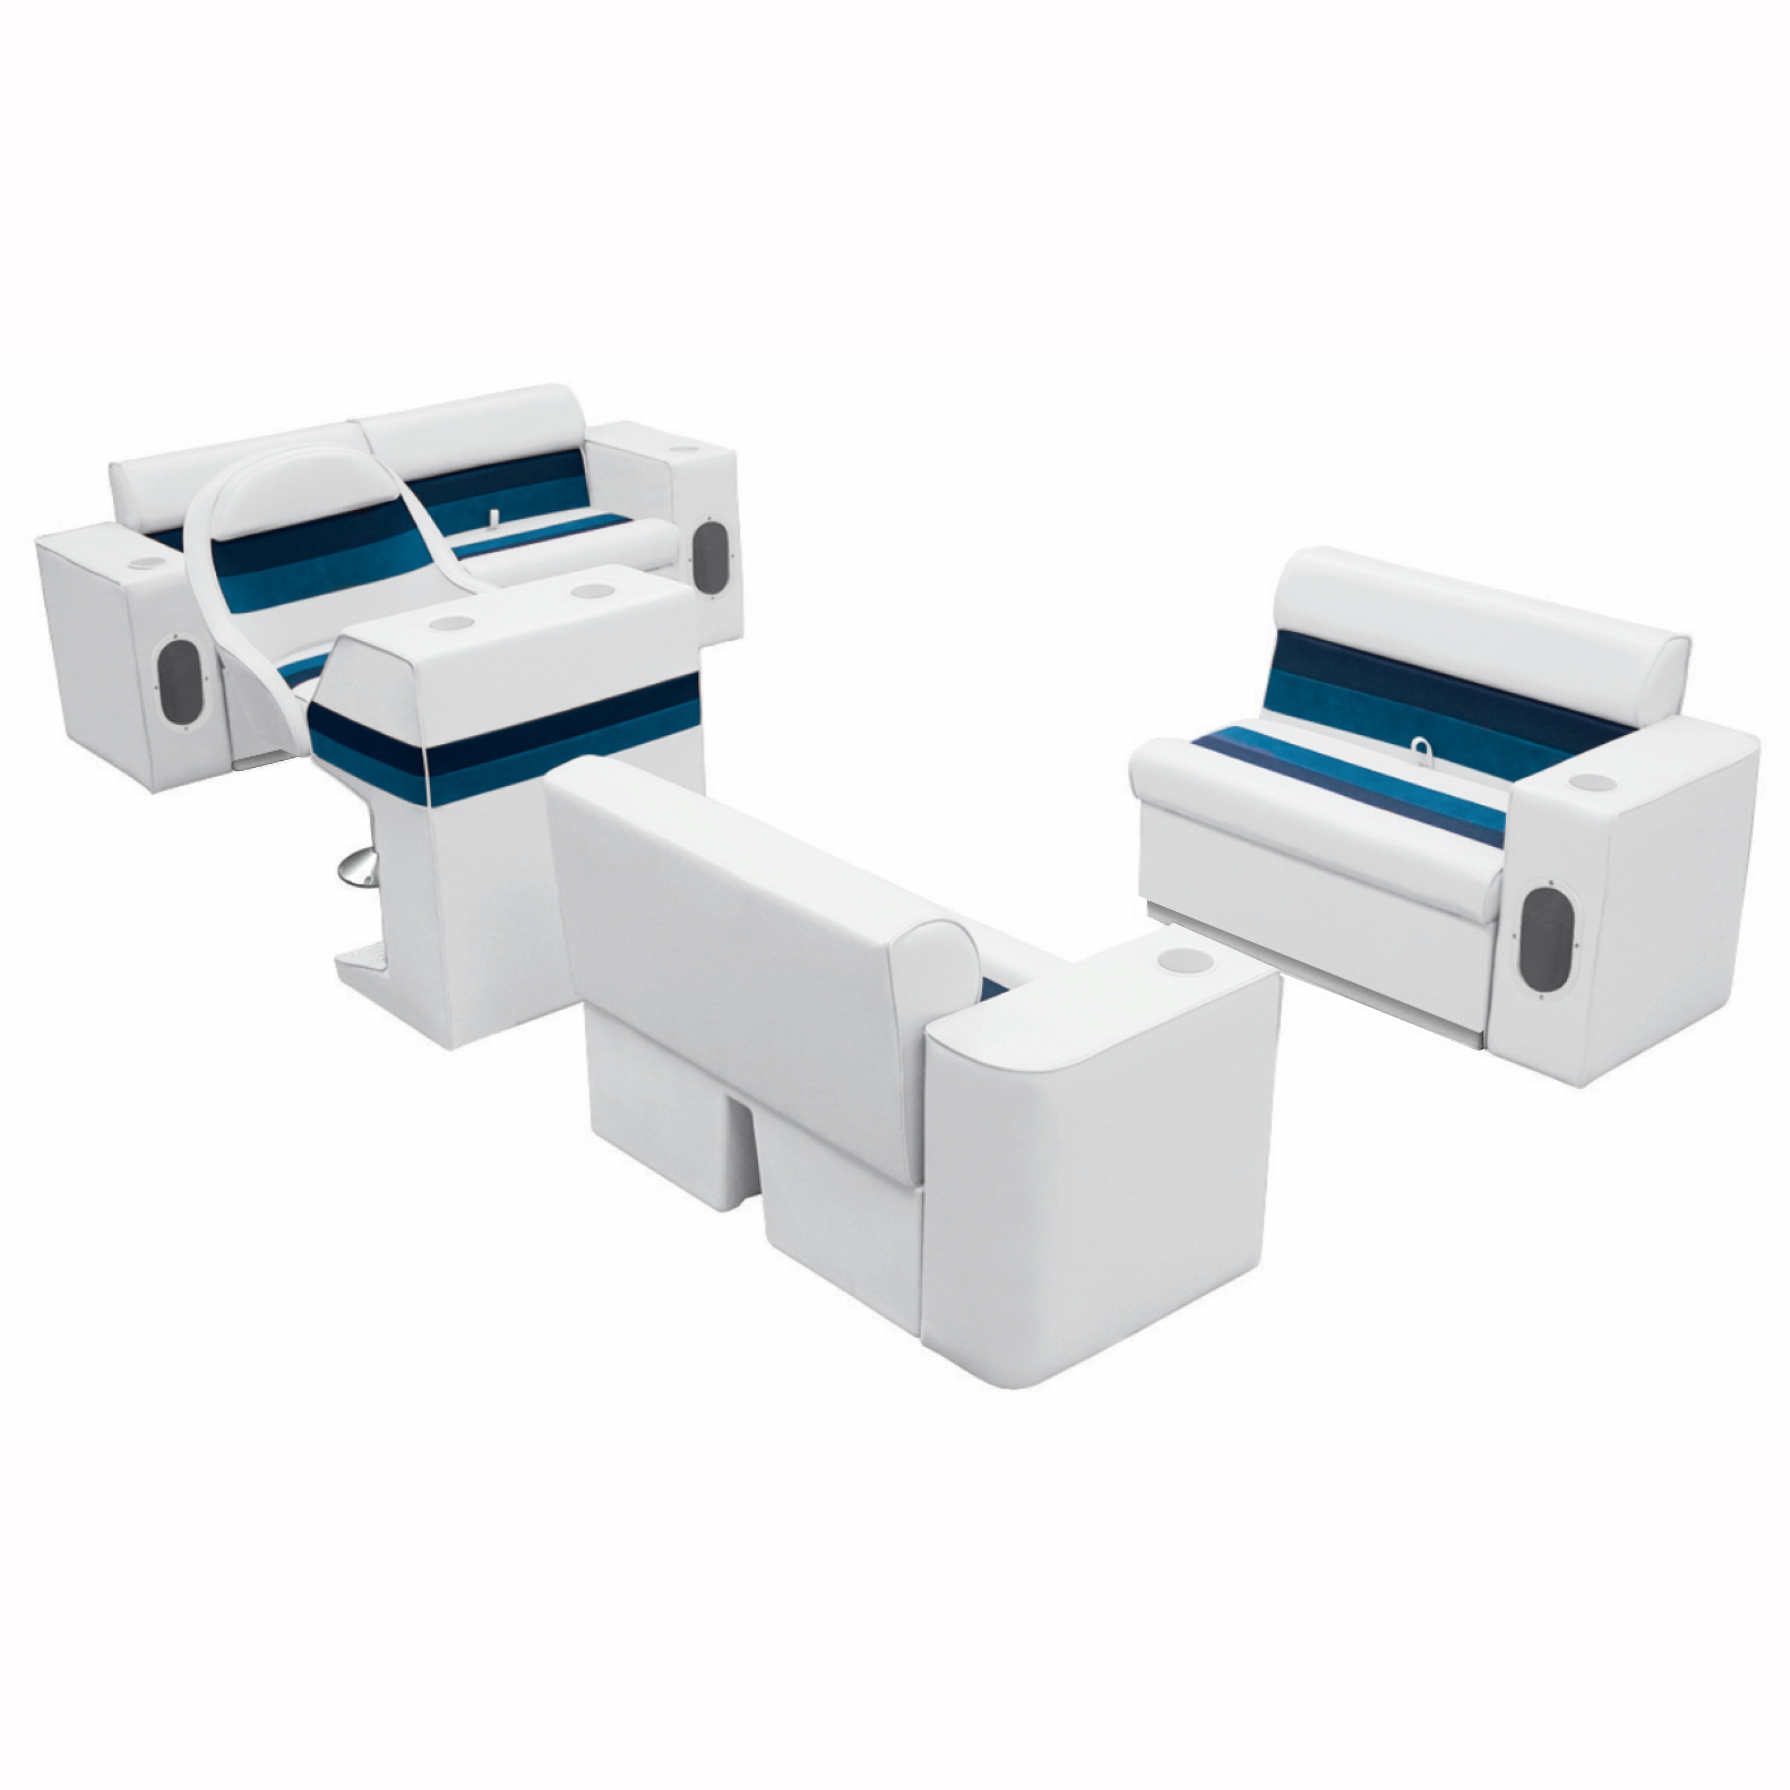 Deluxe Pontoon Seats w/Toe Kick Base, Complete Package Plus Stand, White/Navy/Bl